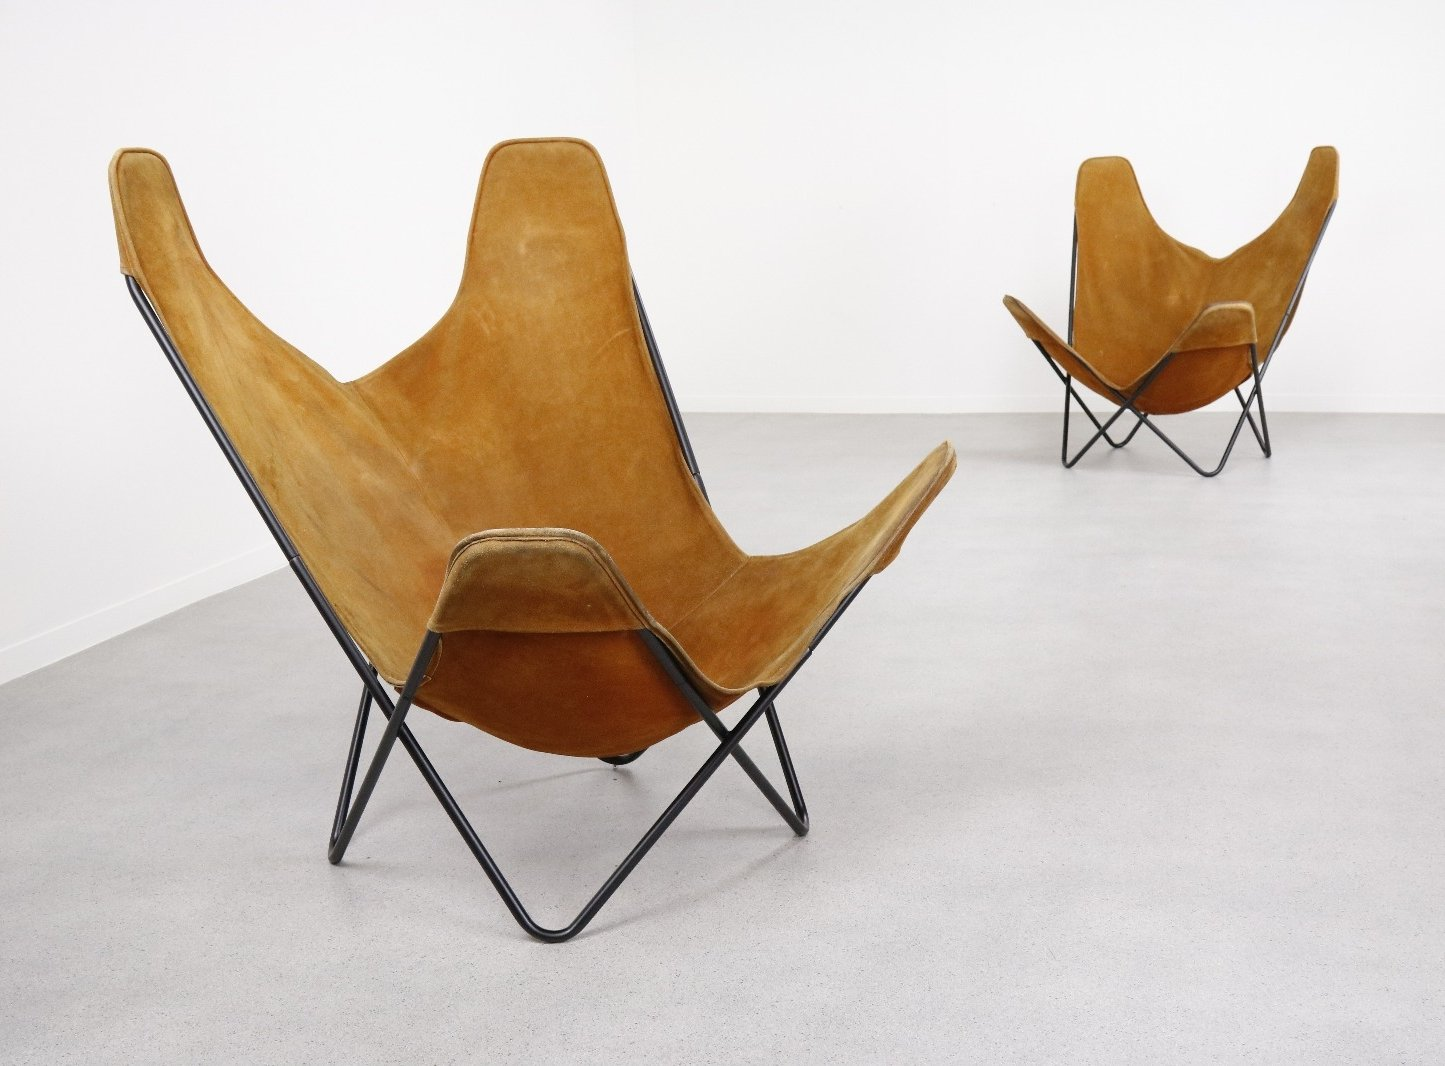 Butterfly Chair Knoll 2 X Butterfly Lounge Chair By Jorge Ferrari Hardoy For Knoll